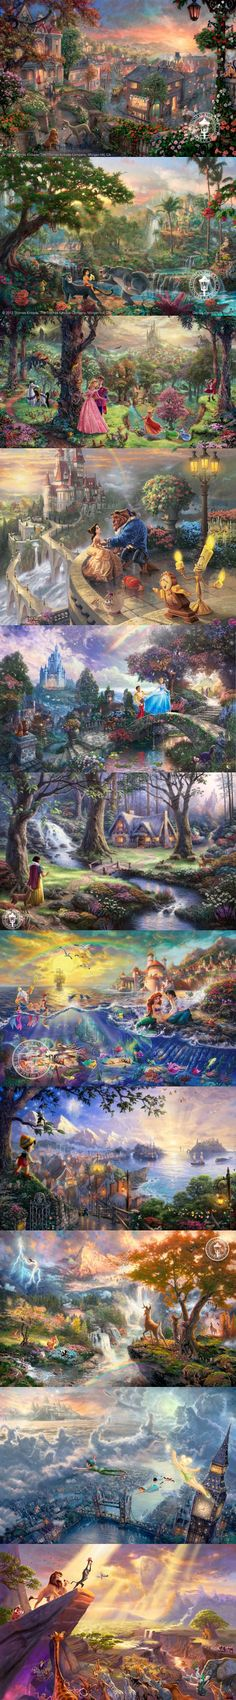 Disney Puzzle Pictures, Thomas Kincaid. At Walmart. @Christy Poindexter  beauty and the beast, peter pan COUGH*COUGH*HINT*HINT *